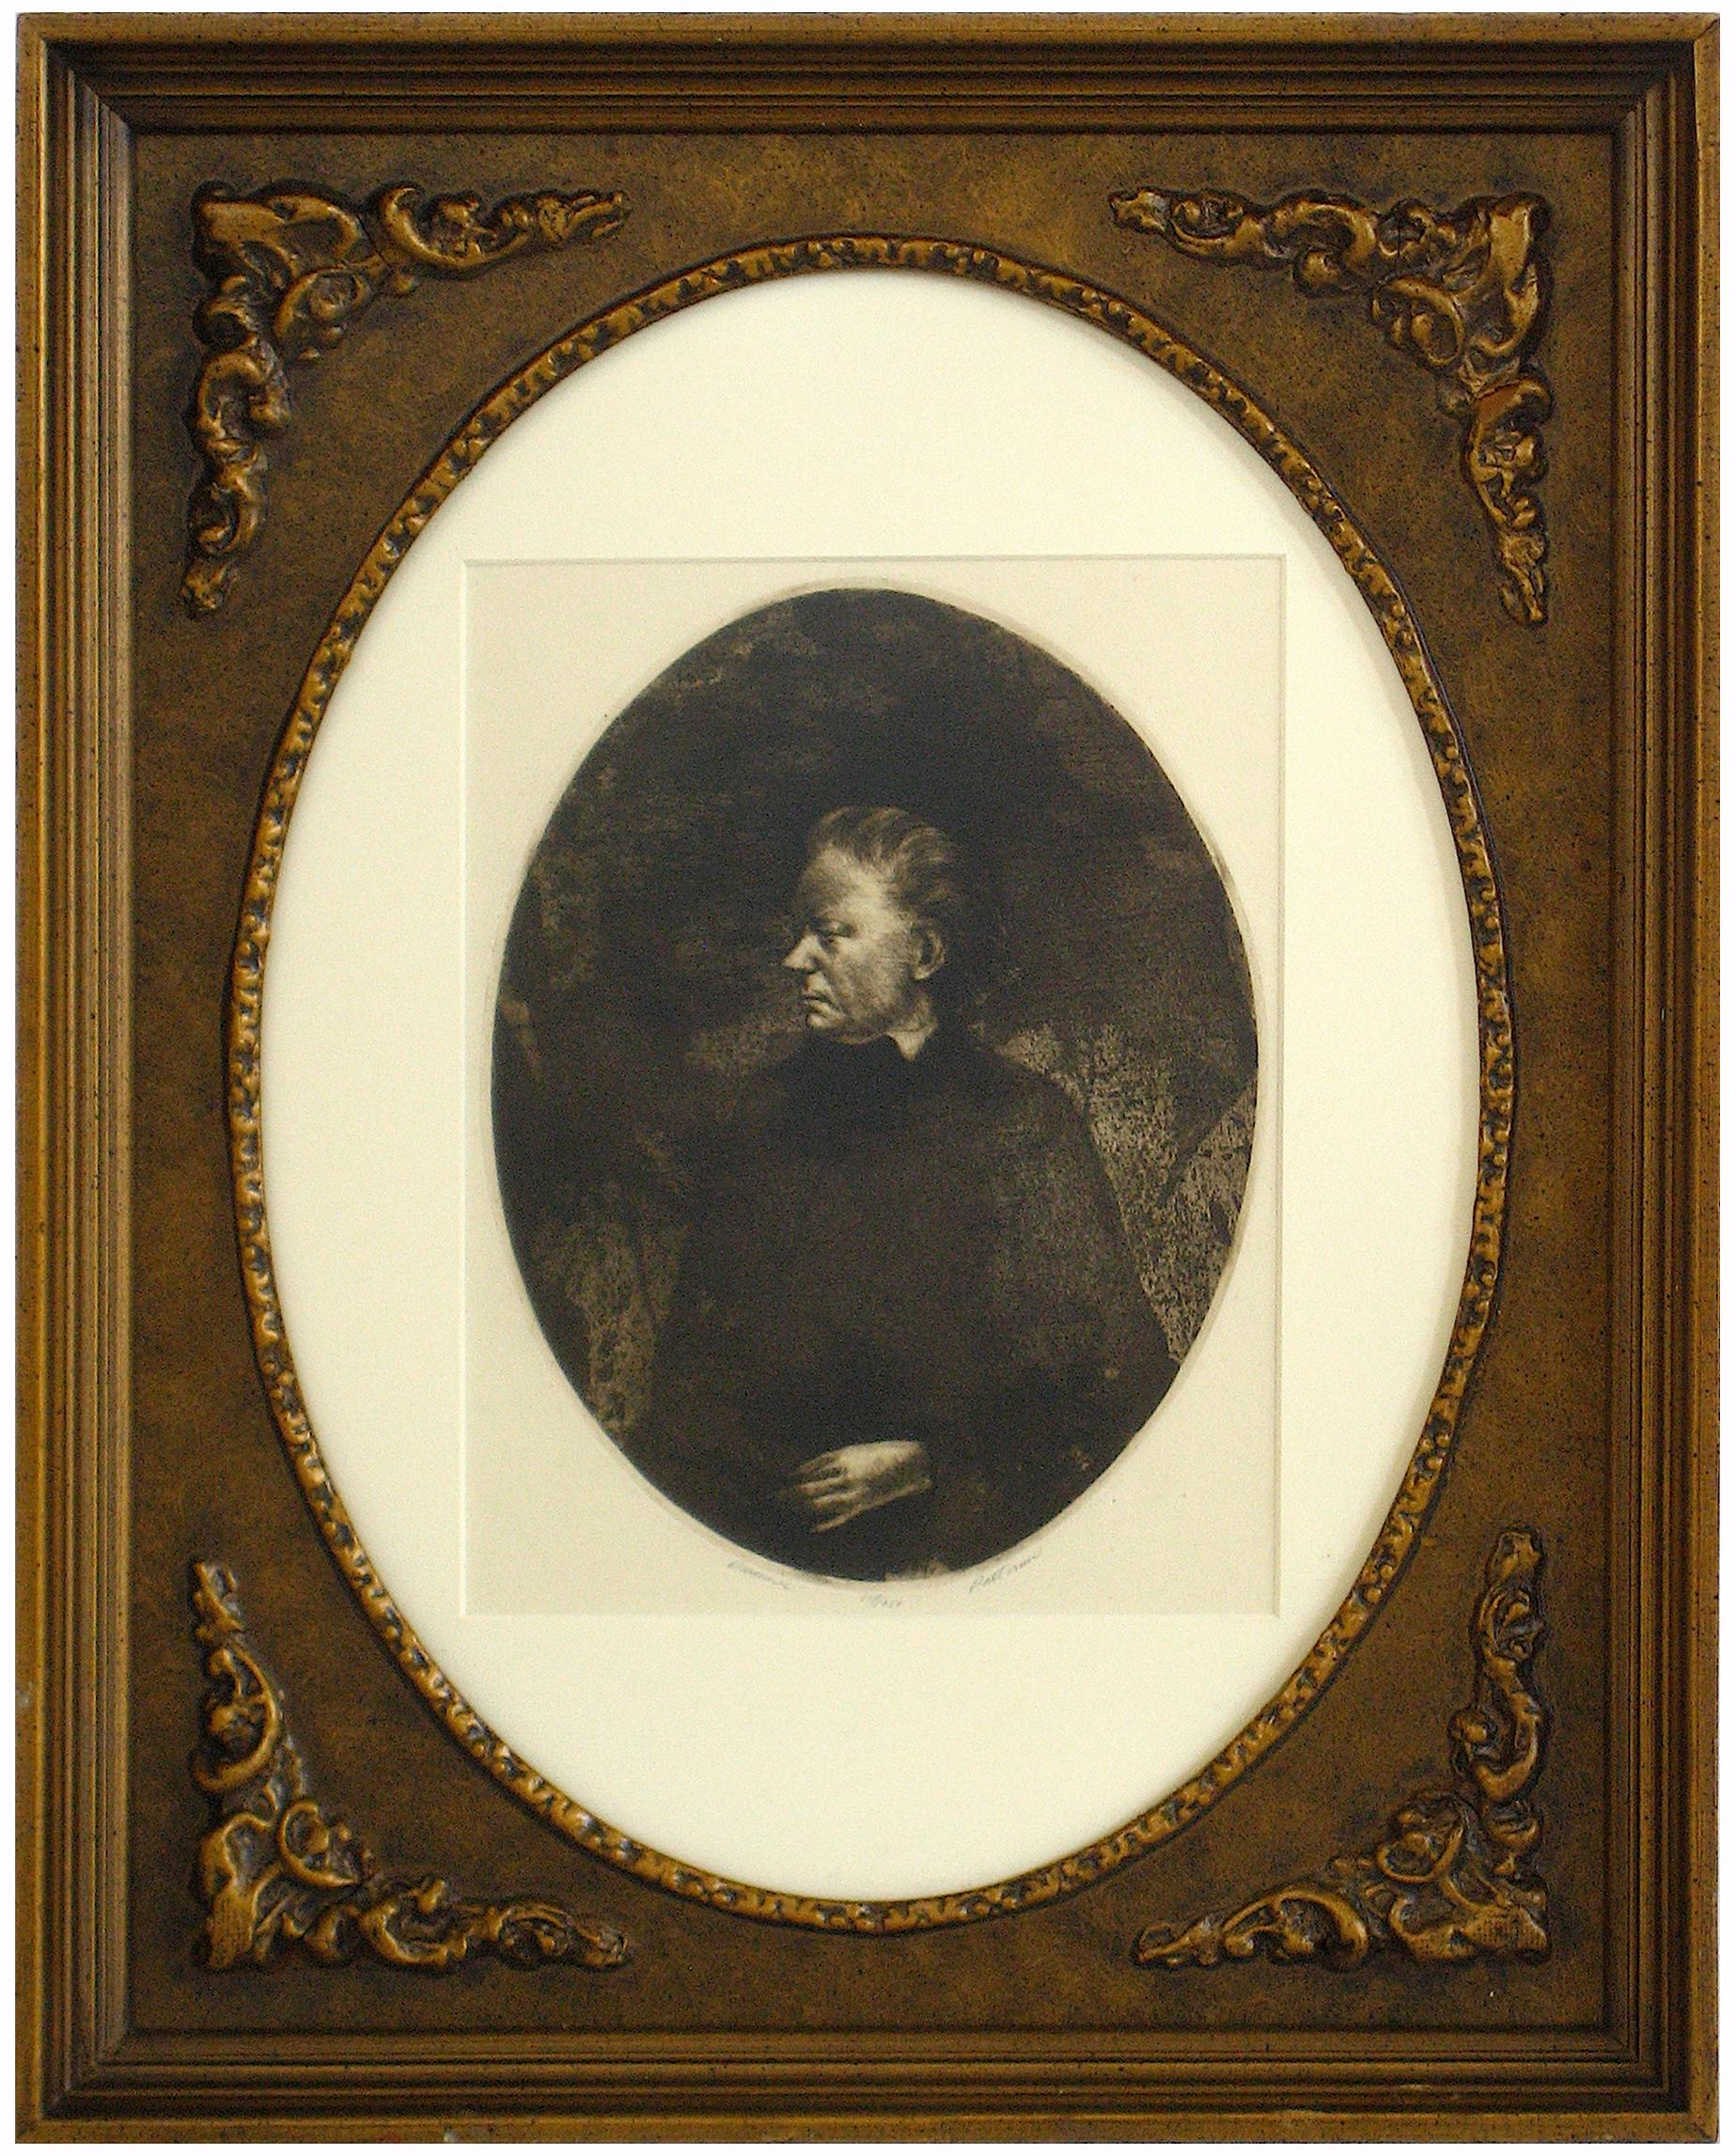 20th Century Etching of a Classic Side Profile Portrait